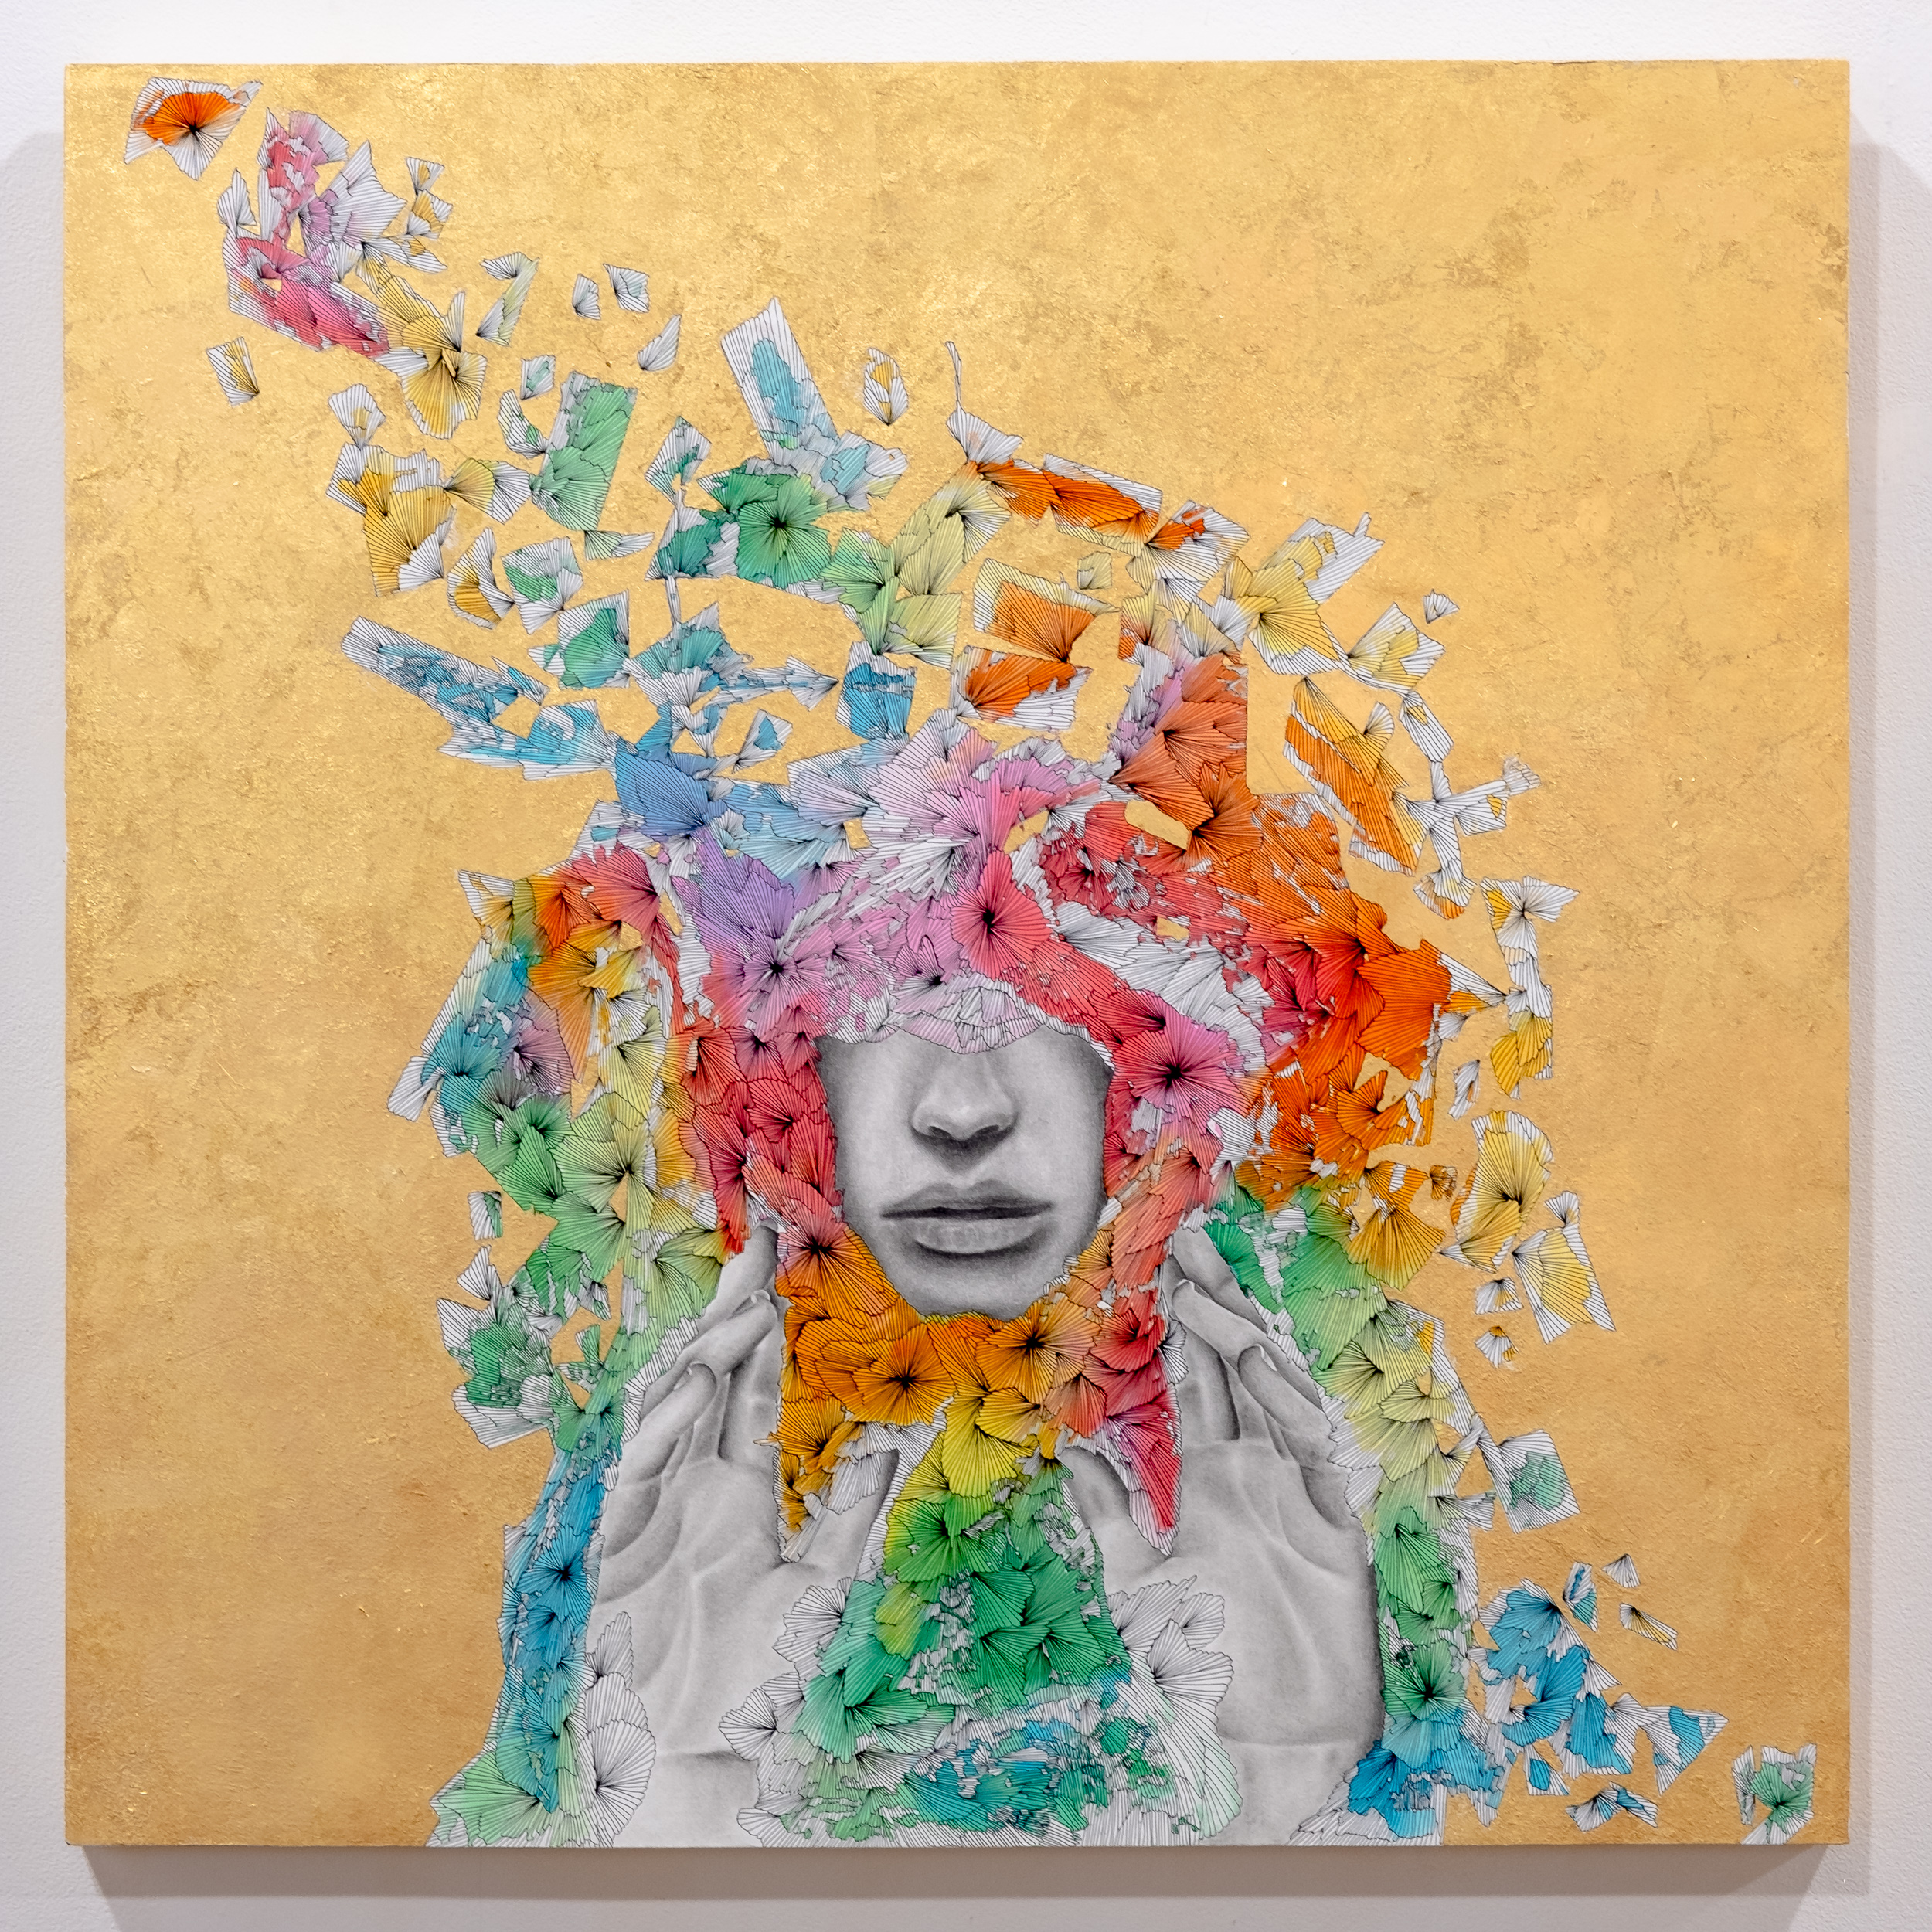 LELA BRUNET Sunscreen   mixed media on paper mounted to wood panel  36 x 36 inches LBR 075G